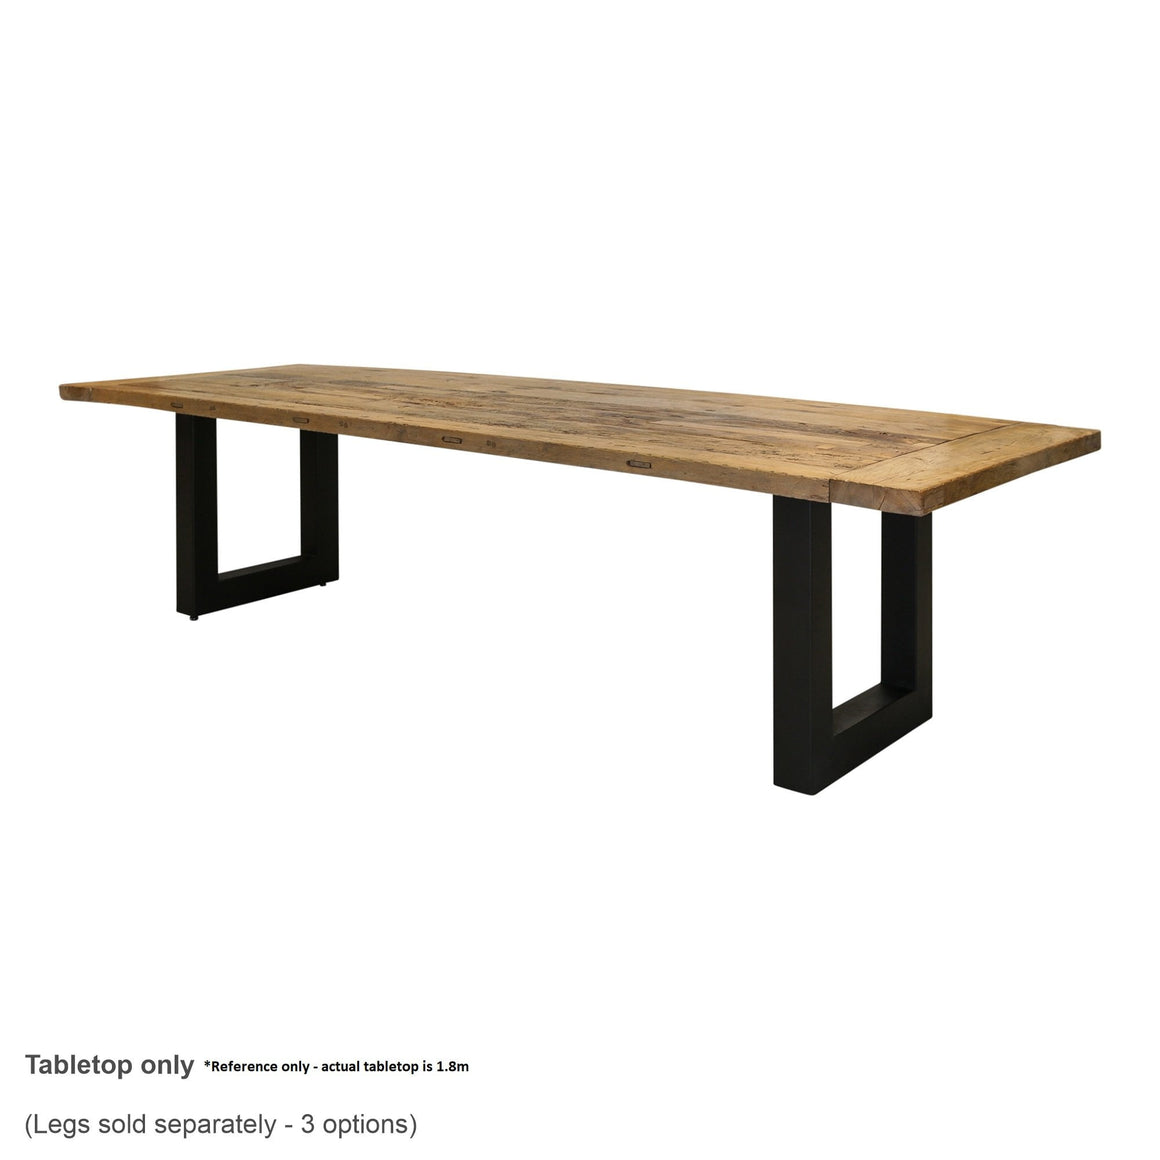 BOATWOOD TABLETOP 1.8M - TOP ONLY